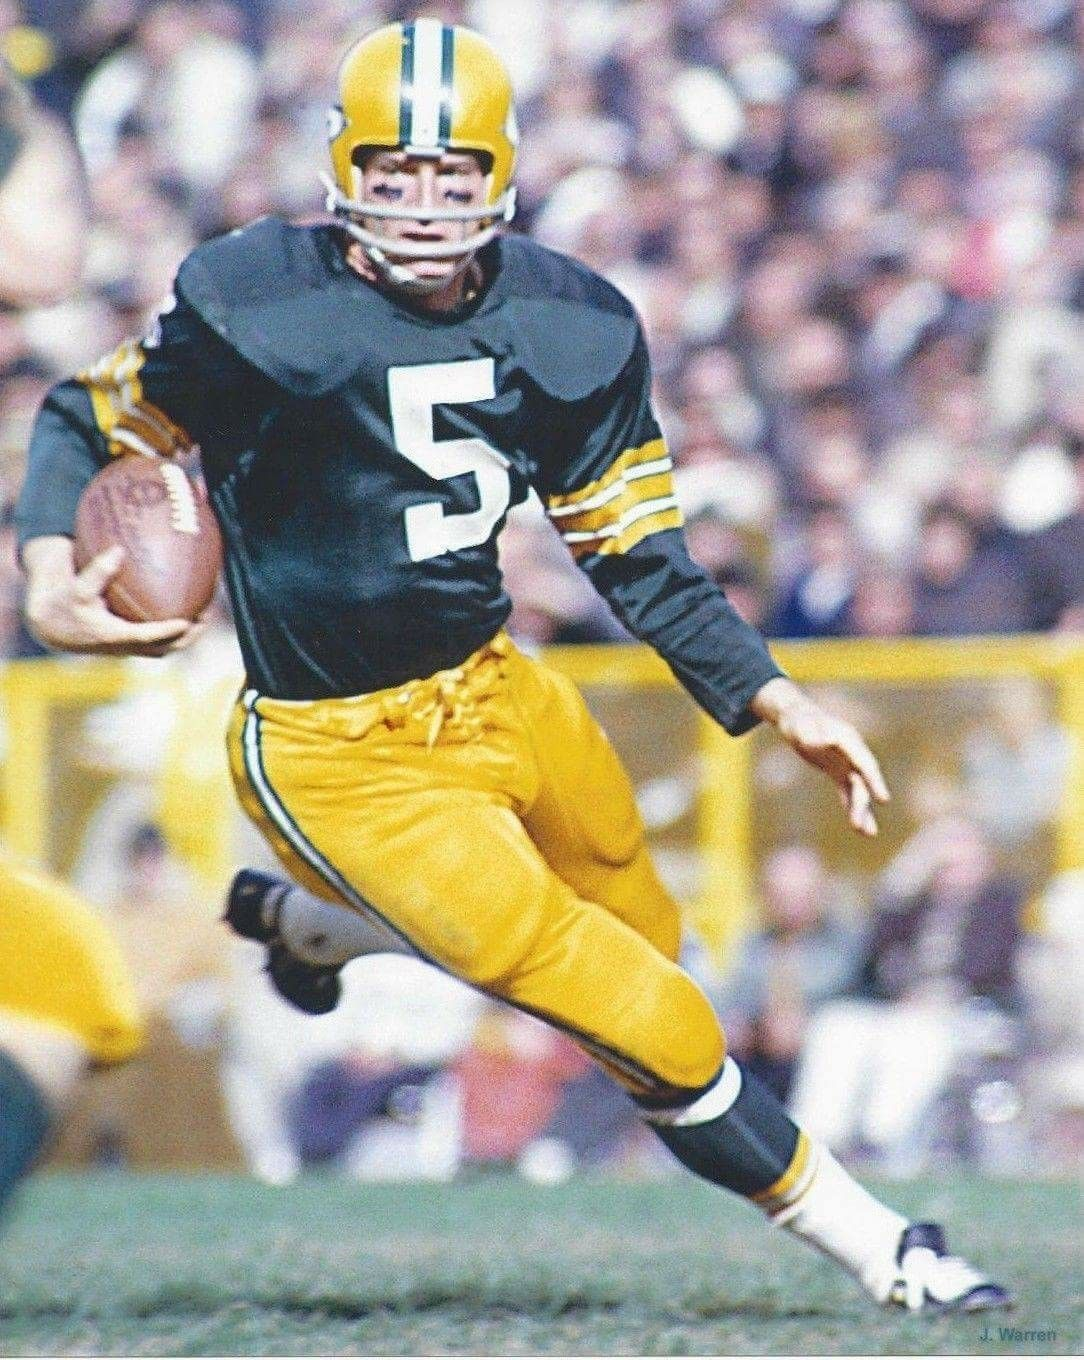 Pin By Anthony S On Oldskool Nfl Unis Nfl Football Players Green Bay Packers Vintage Football Images